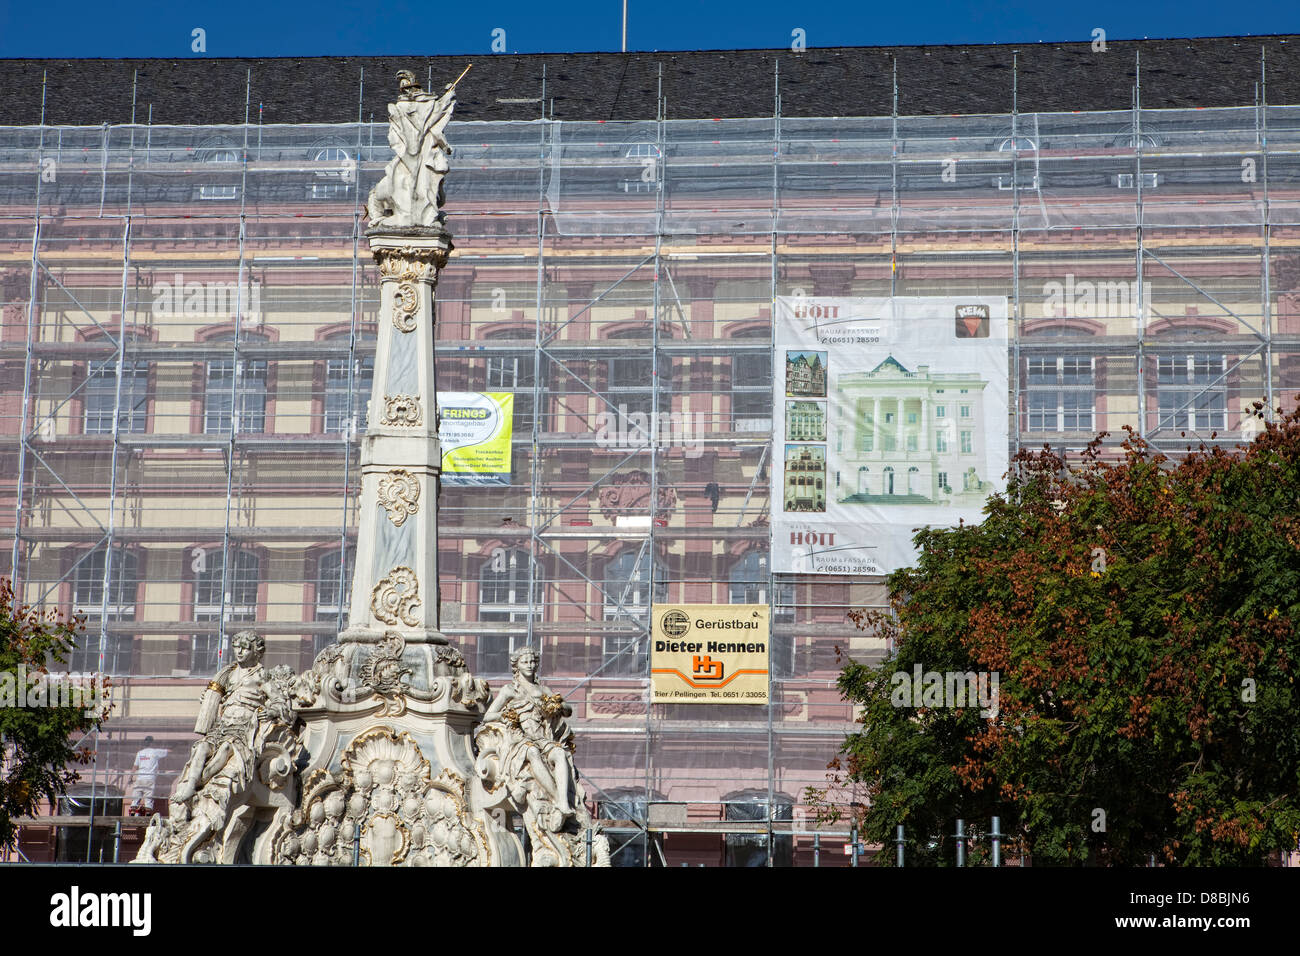 Building renovation, scaffolding, Georgsbrunnen fountain, Trier, Rhineland-Palatinate, Germany, Europe Stock Photo